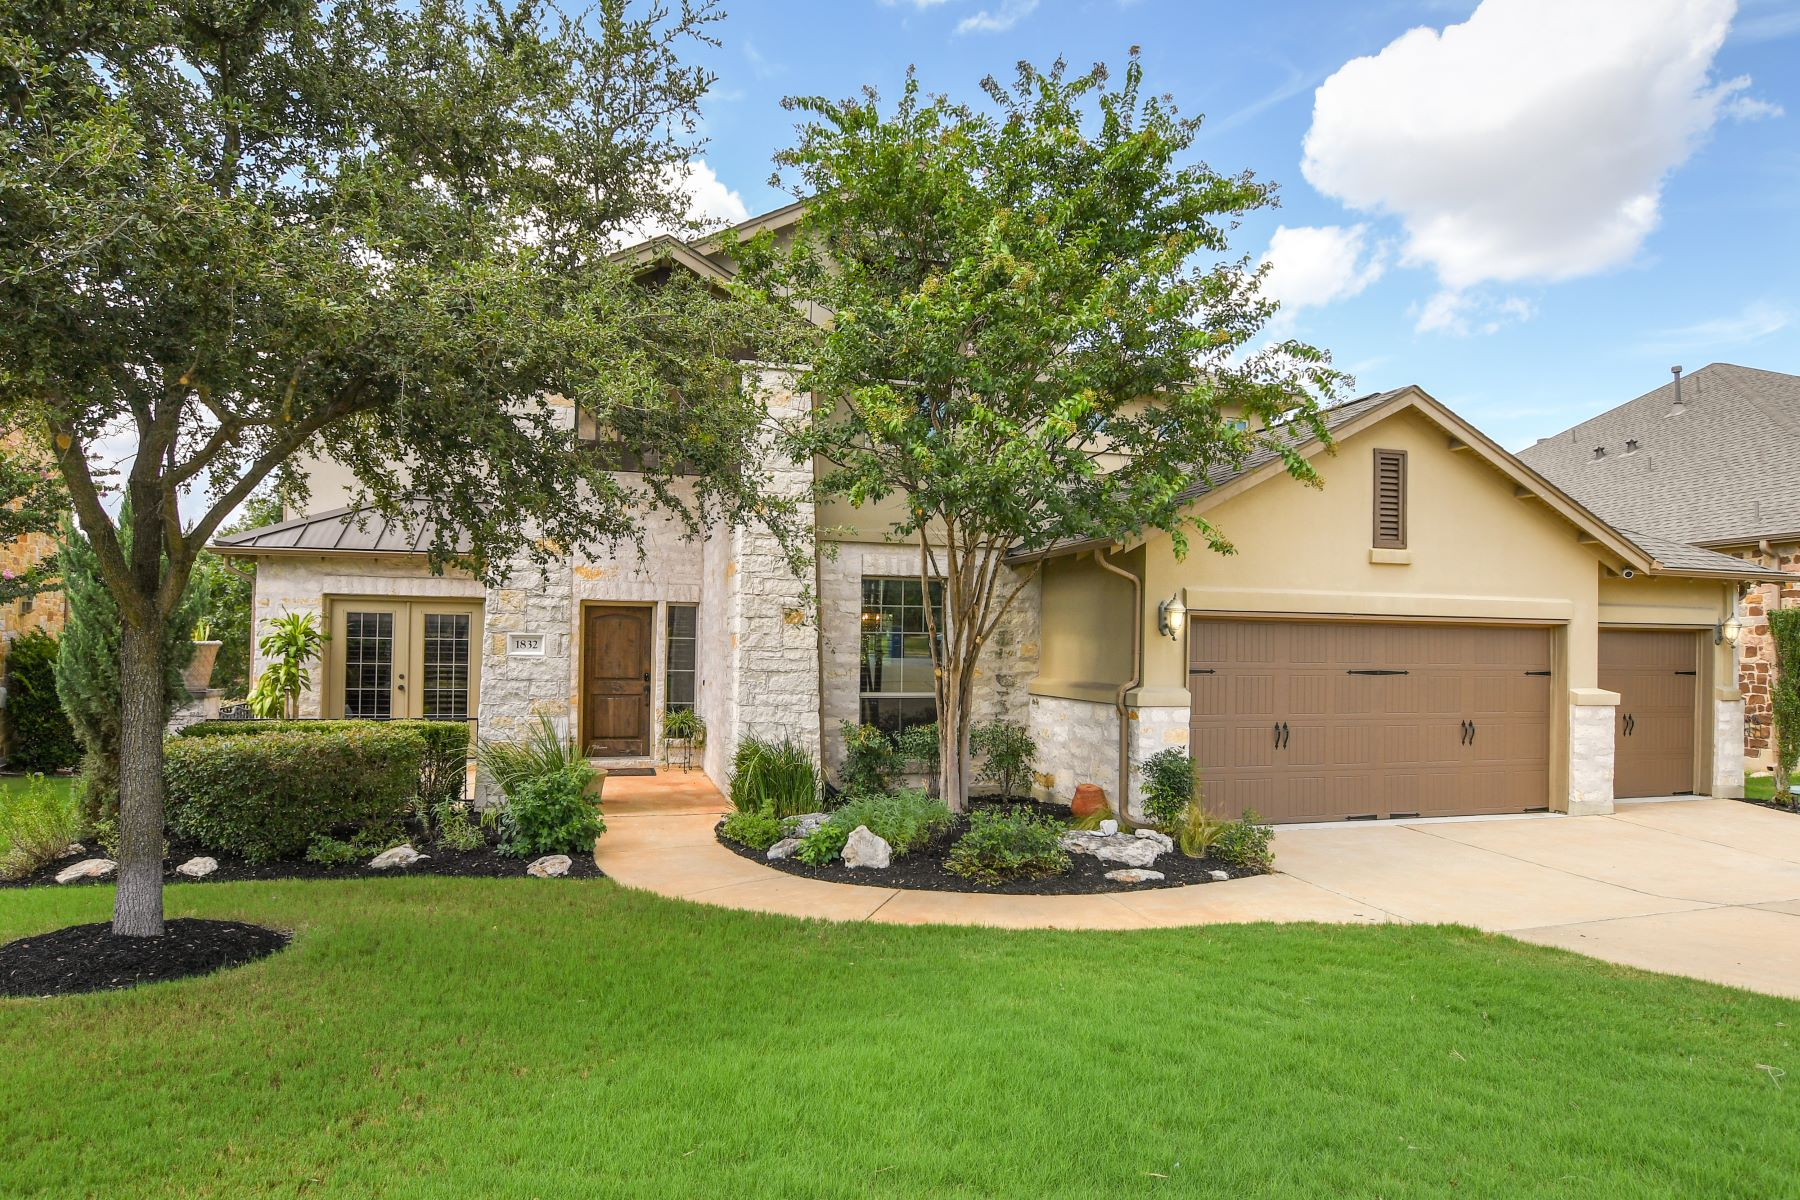 Single Family Homes for Sale at 1832 Harvest Dance Drive, Leander, TX 78641 1832 Harvest Dance Drive Leander, Texas 78641 United States